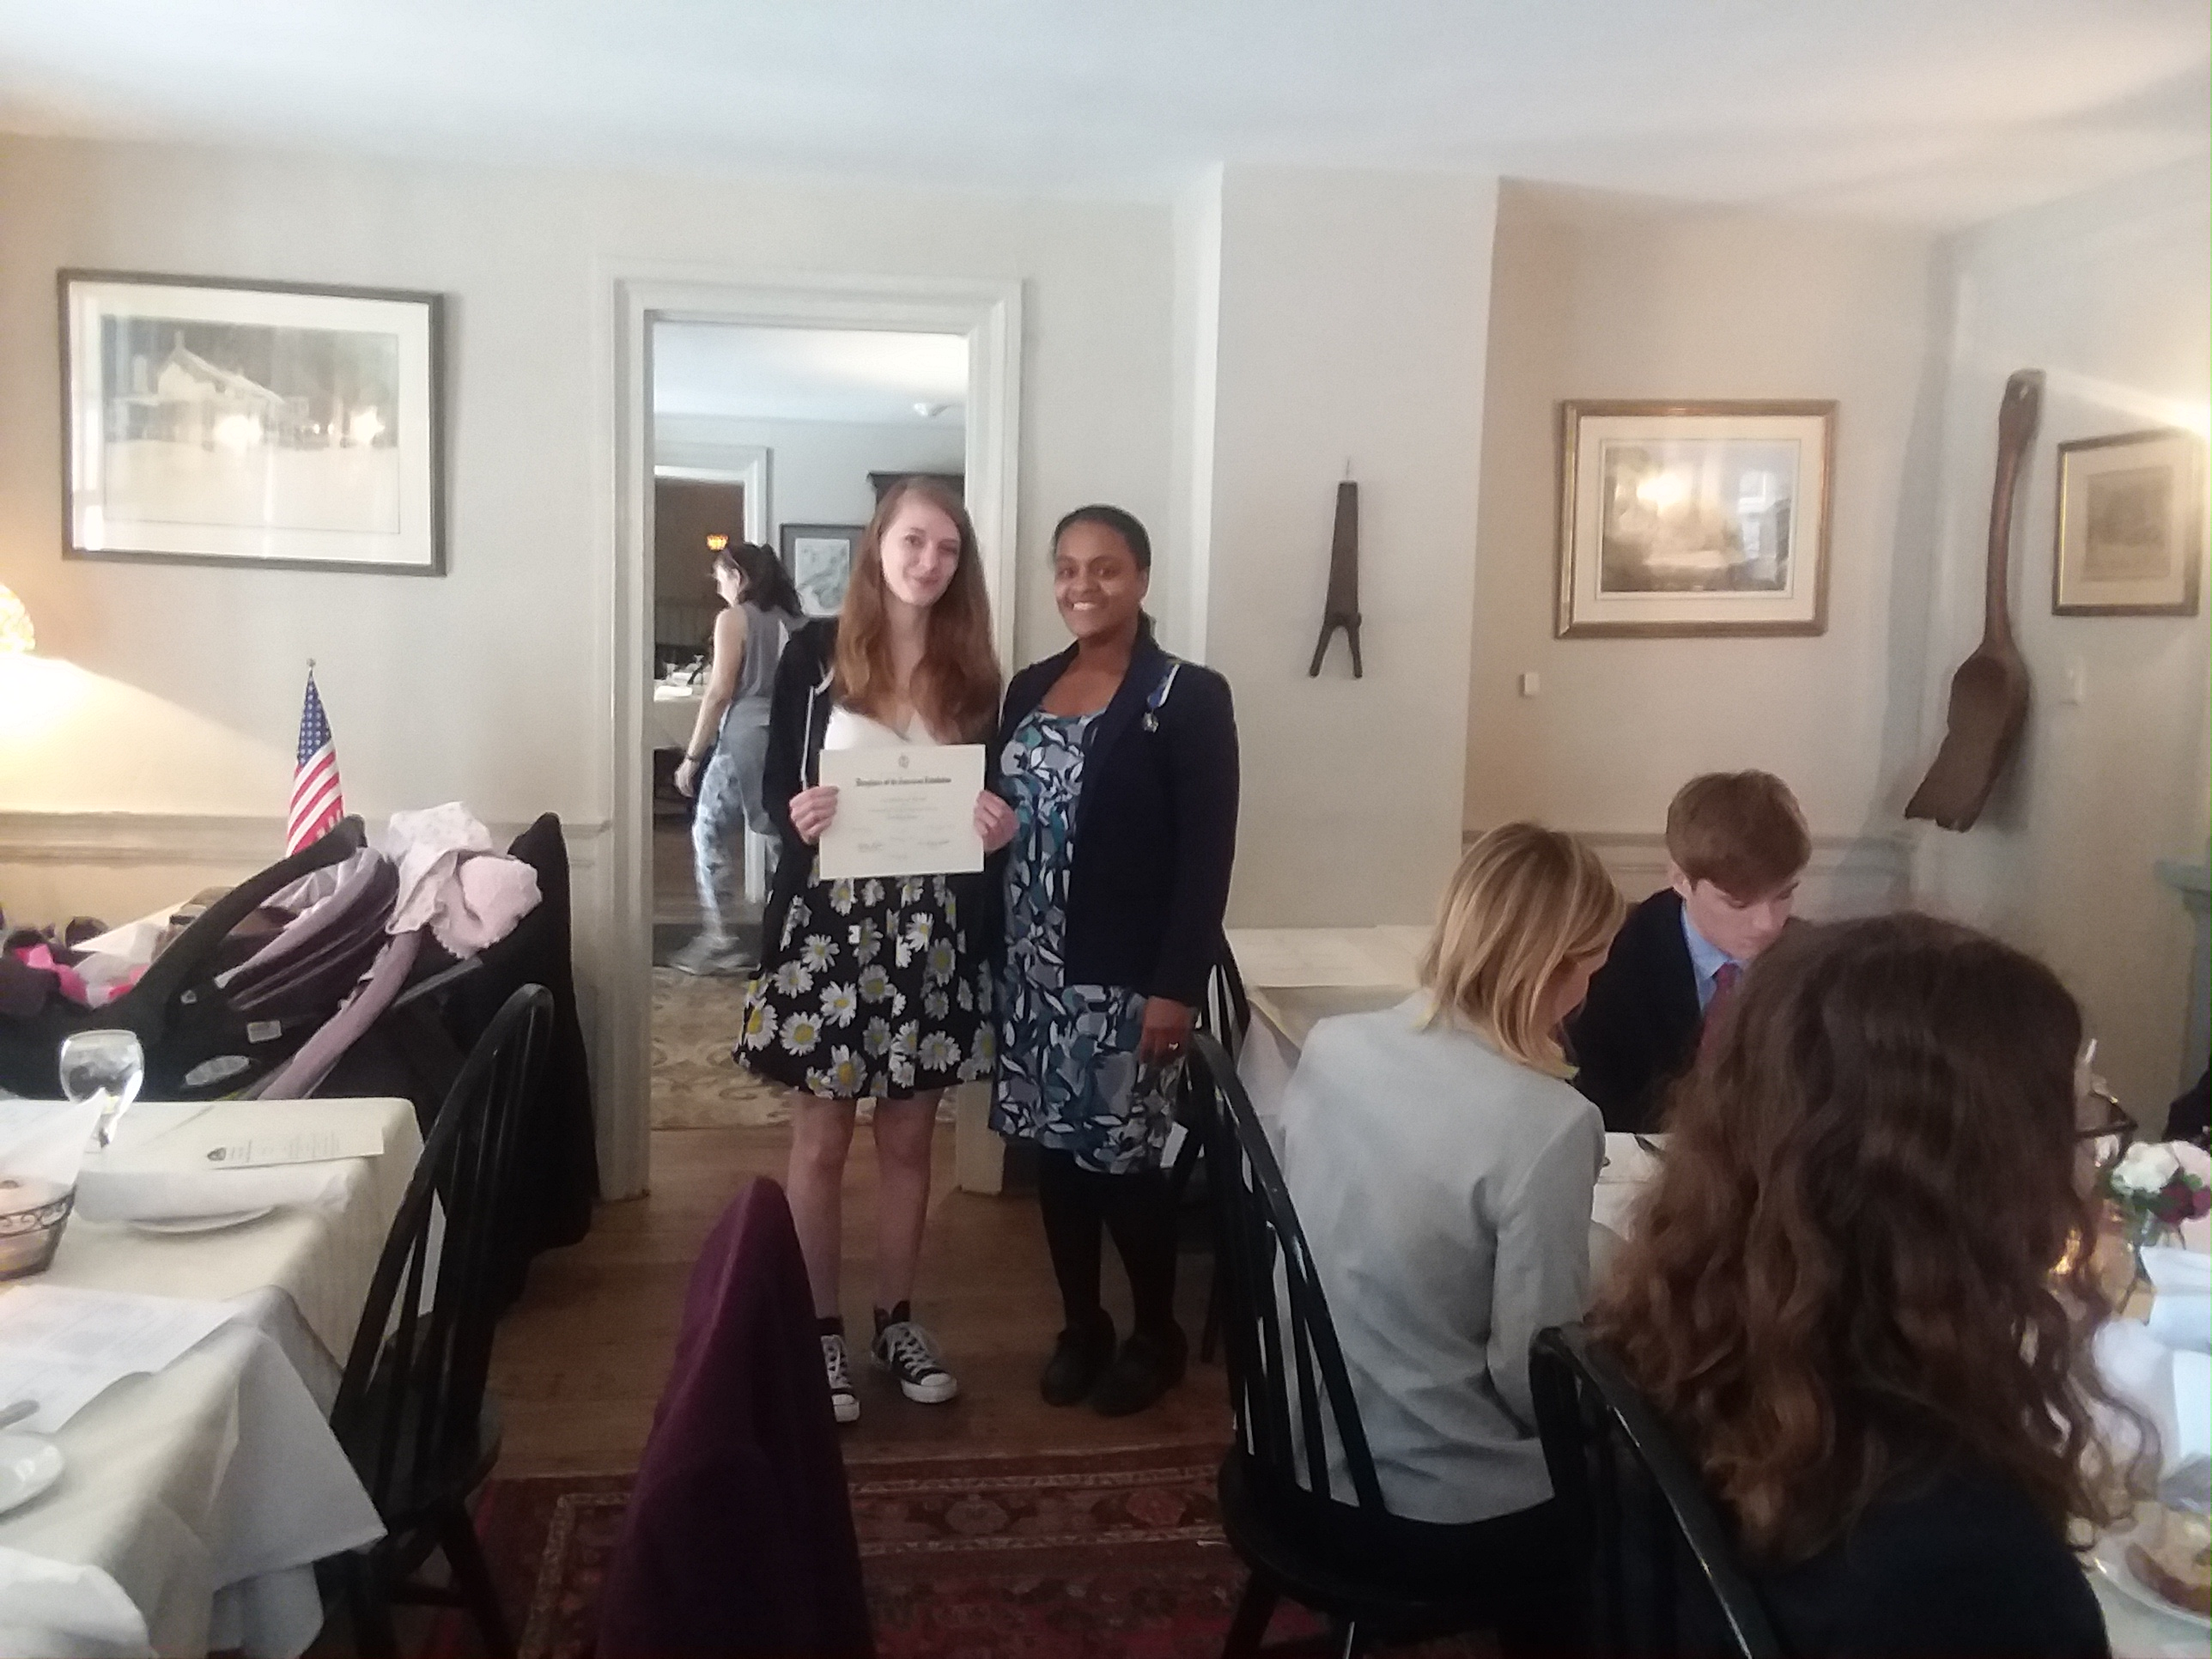 Regent standing with student holding award